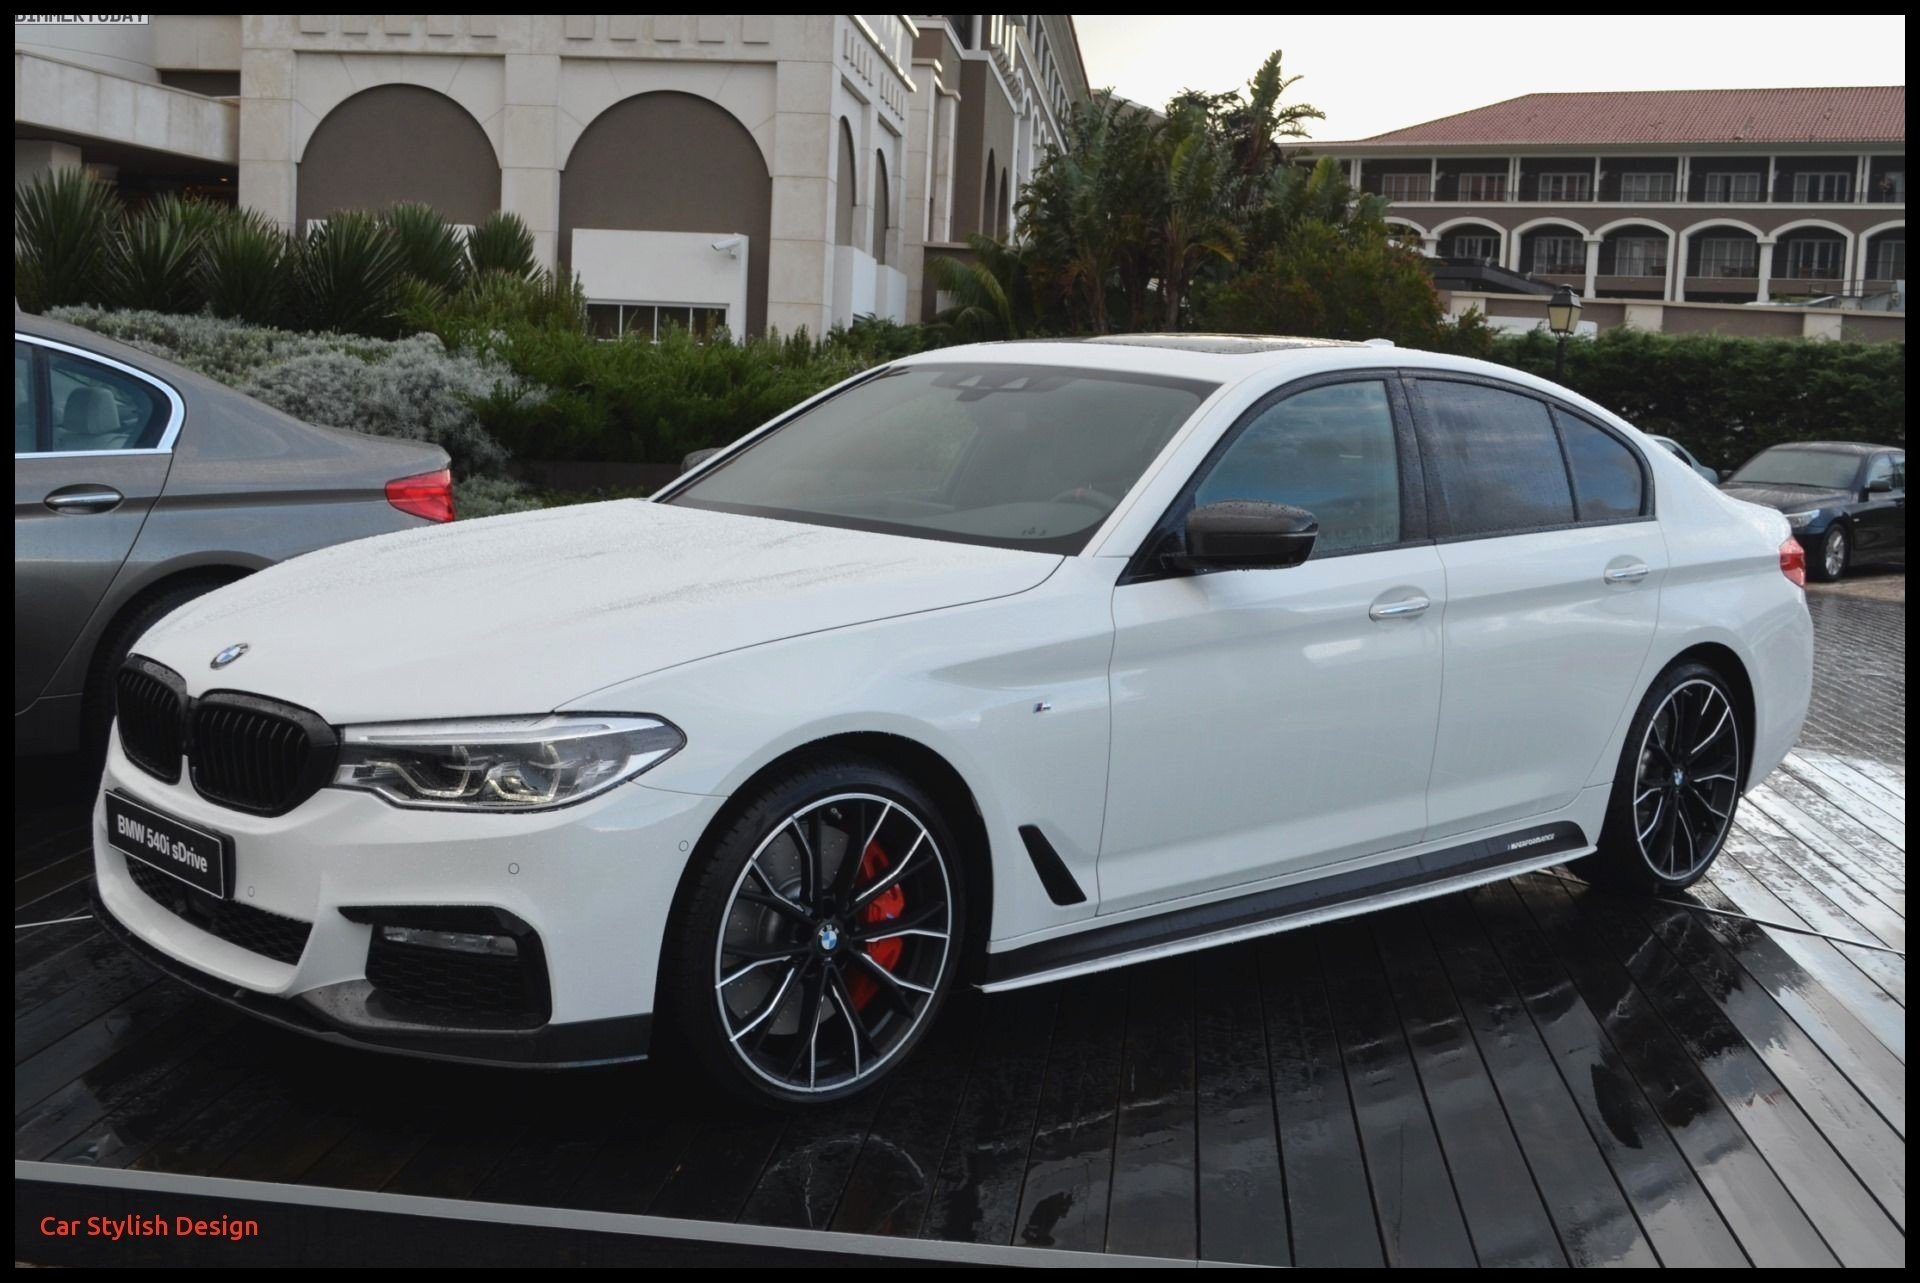 Bmw 5 Series 2017 Awesome Glamorous 2017 Bmw 540i M Performance Review Bmw 5 Series Pinterest